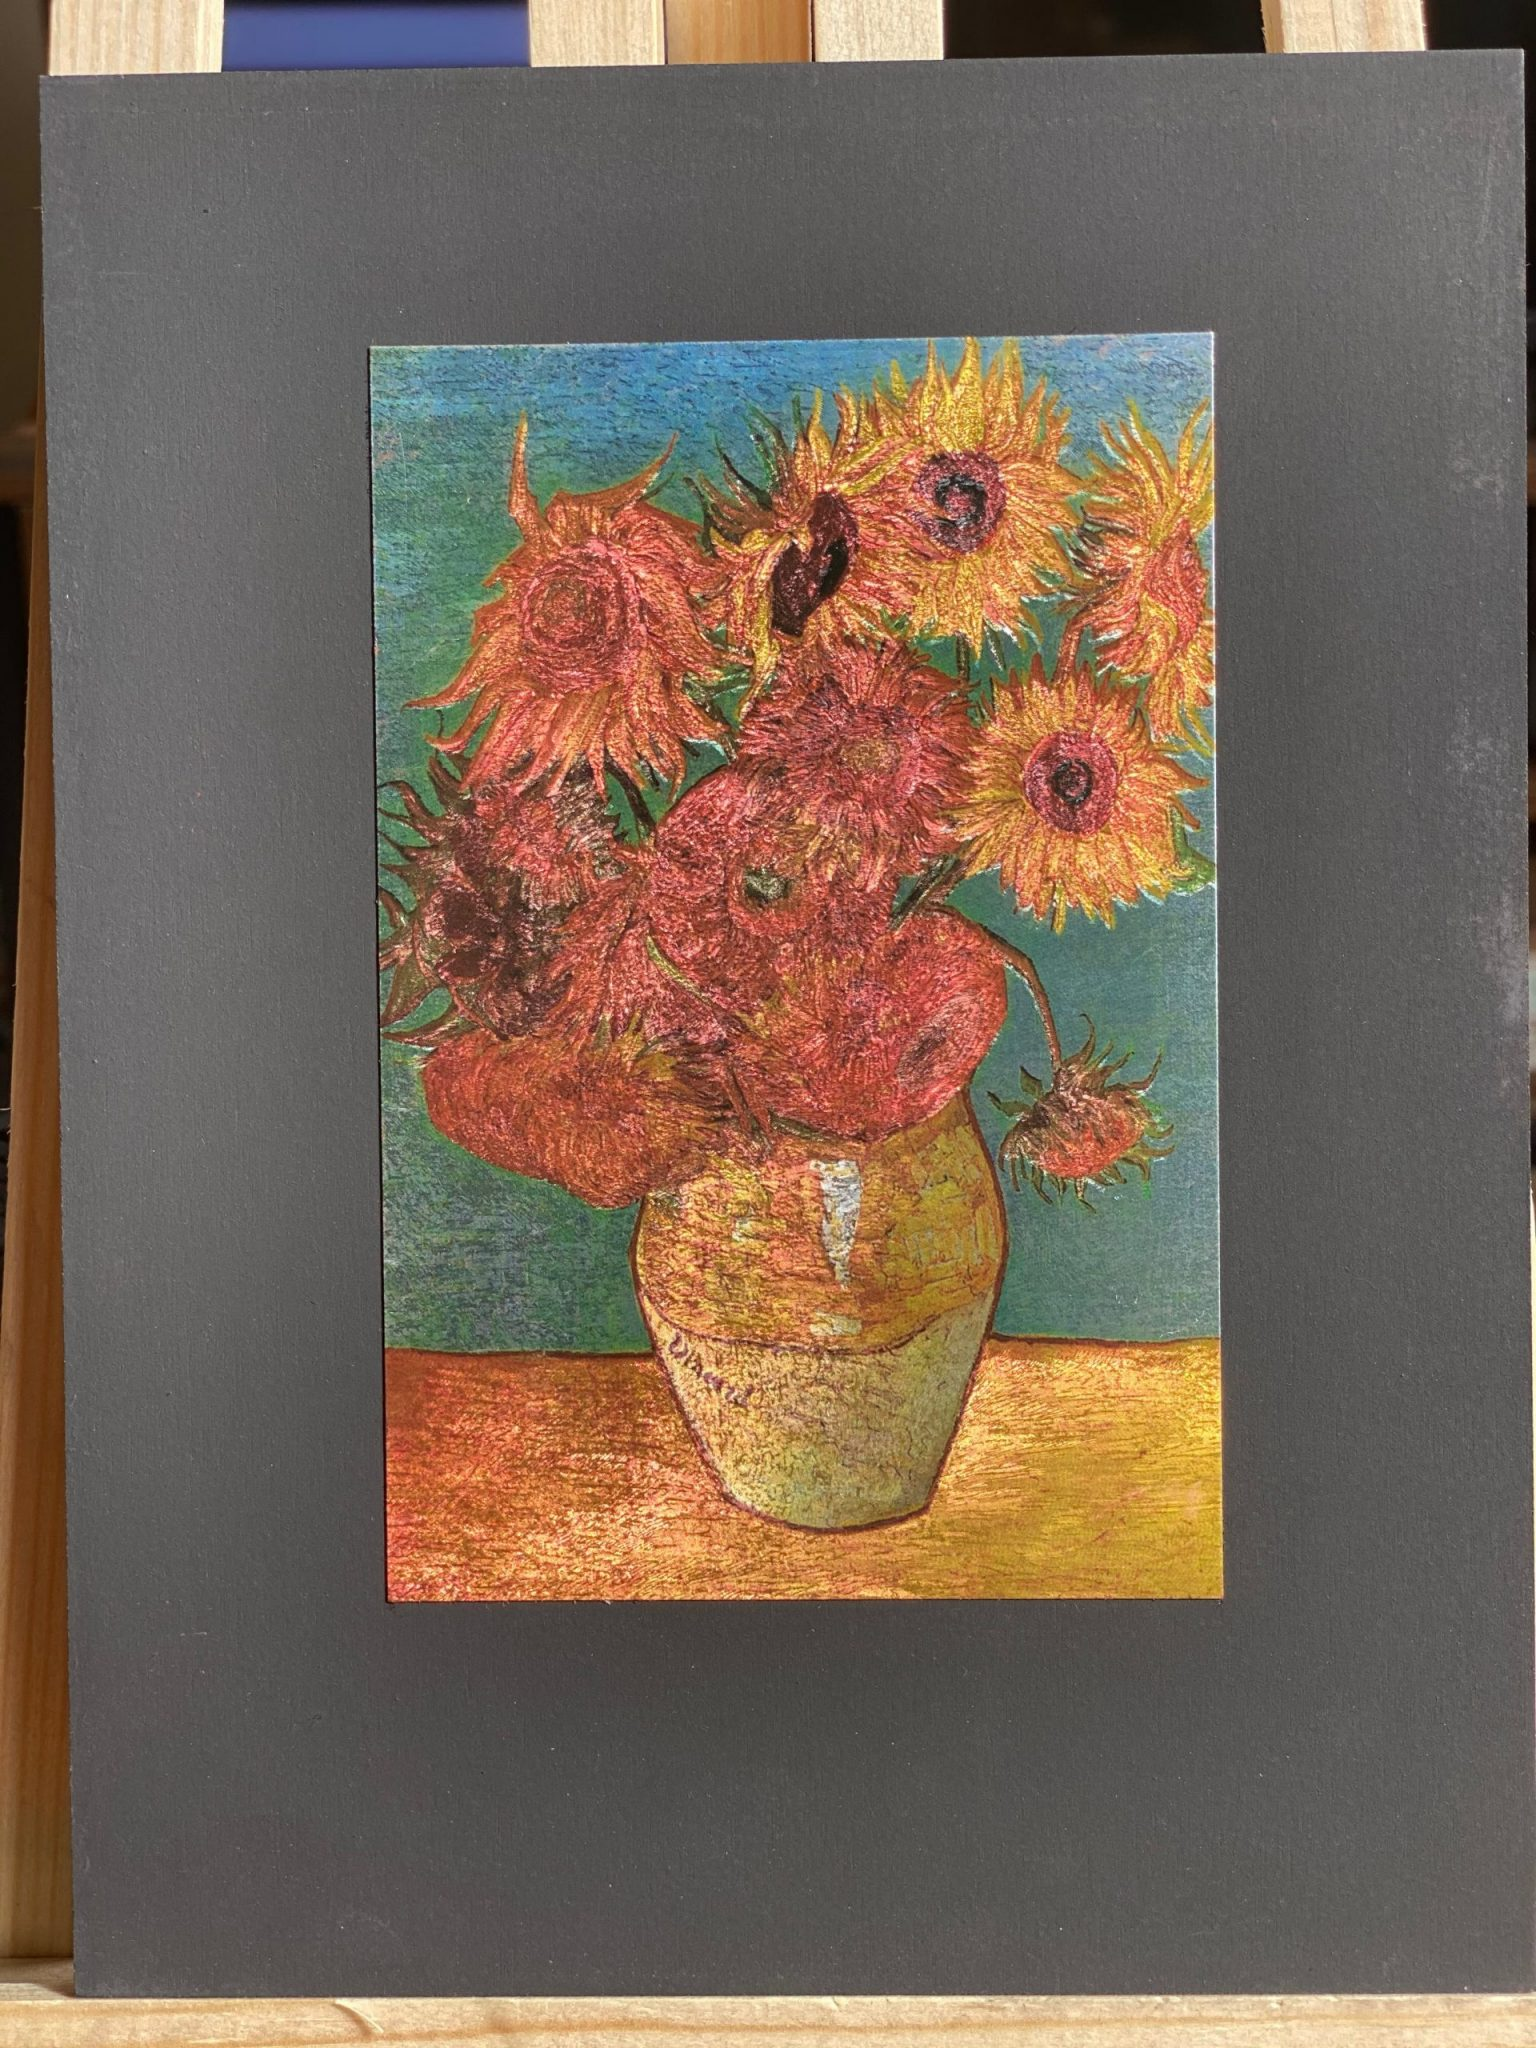 Sunflowers Van Gogh Blue Small Size